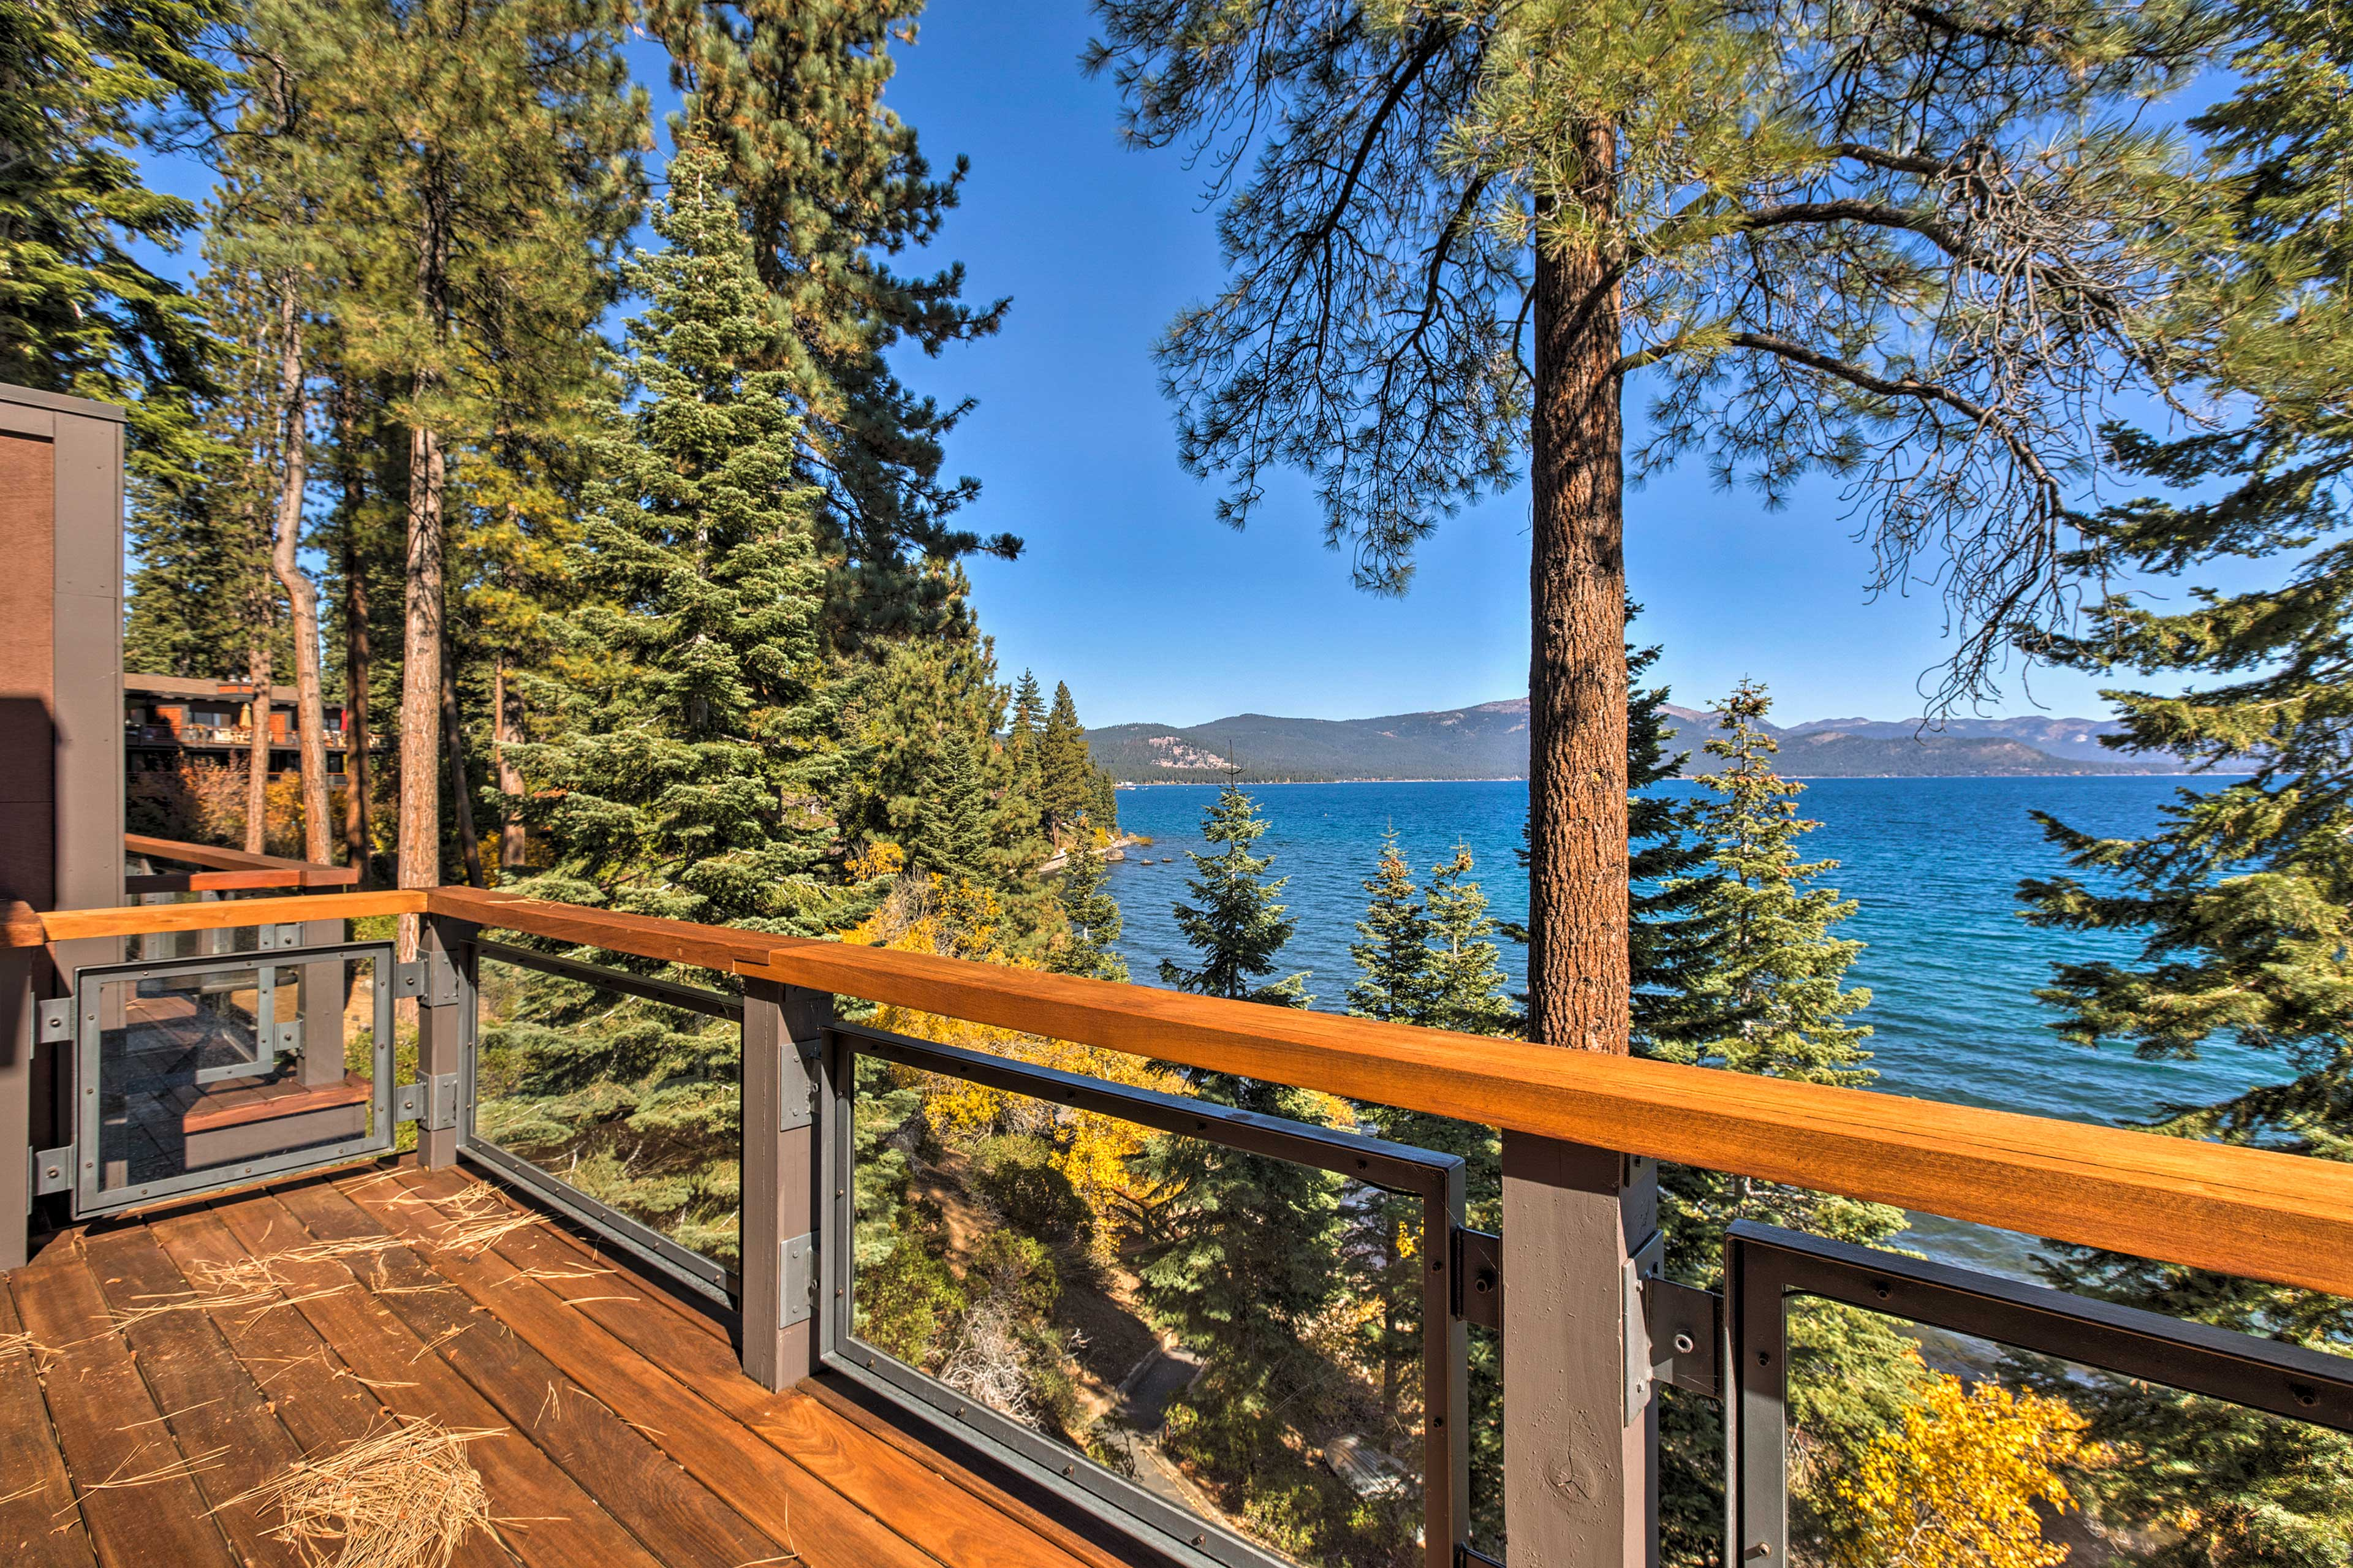 These views are sure to be a highlight of your Lake Tahoe getaway!